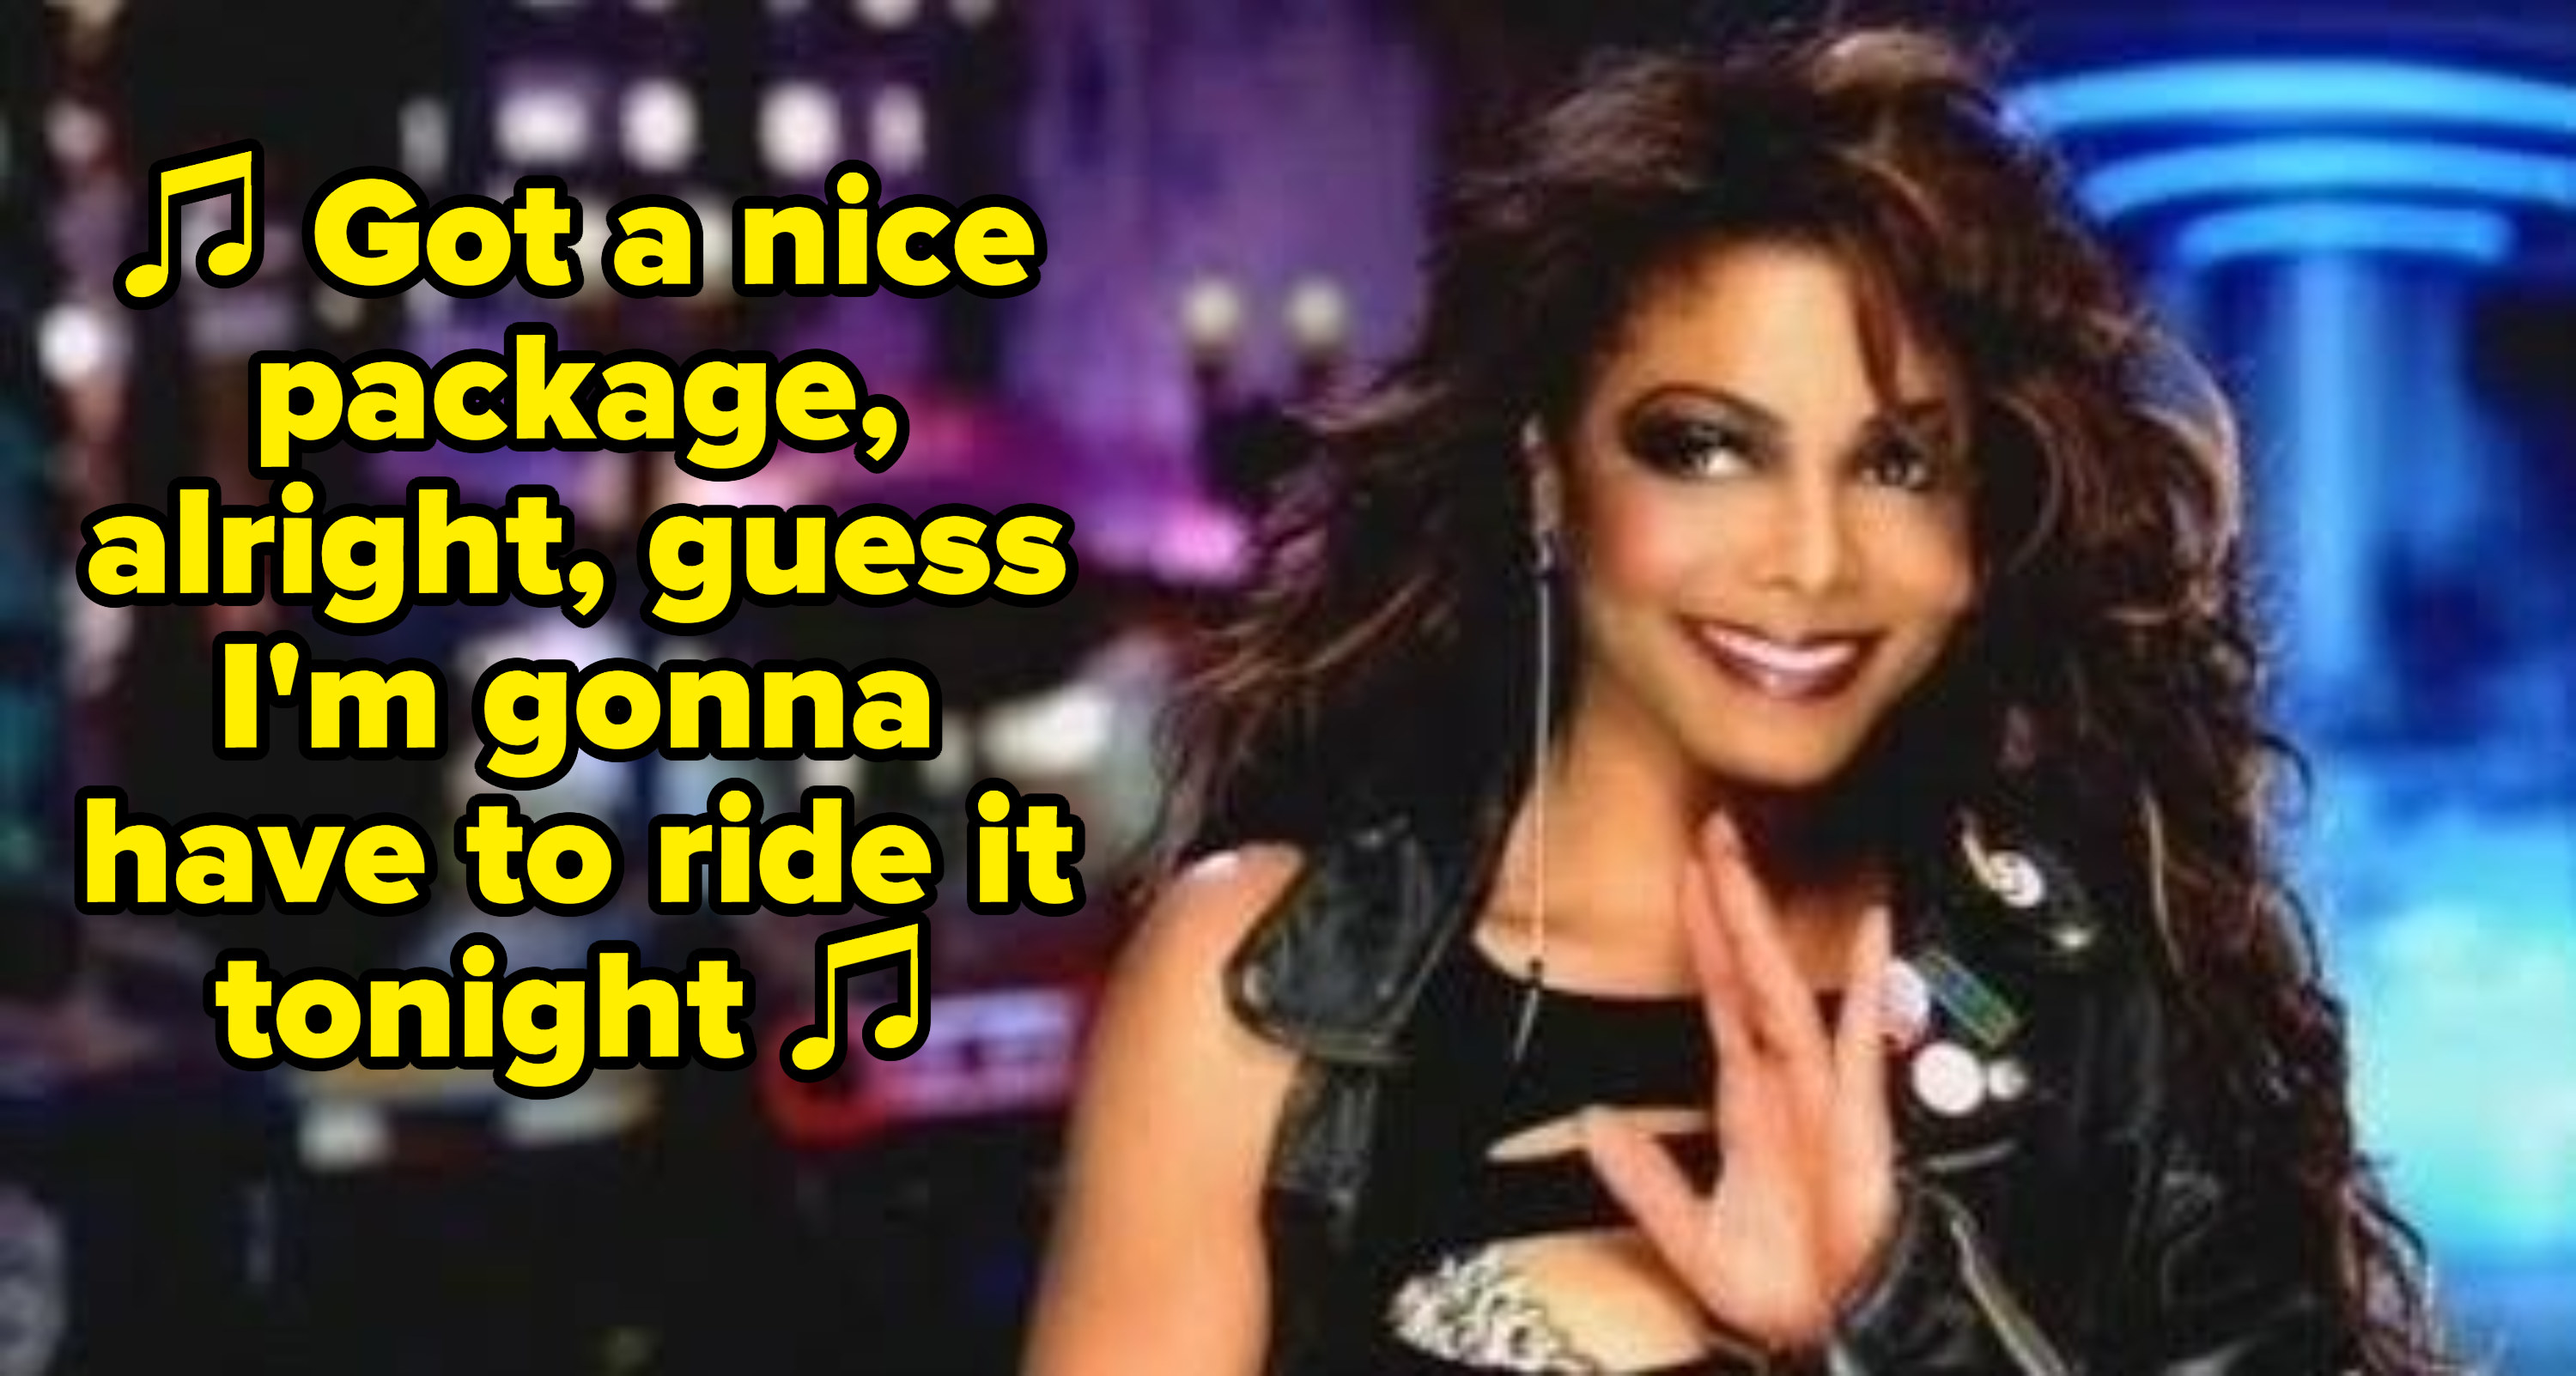 """Janet Jackson singing, """"Got a nice package, alright, guess I'm gonna have to ride it tonight"""""""